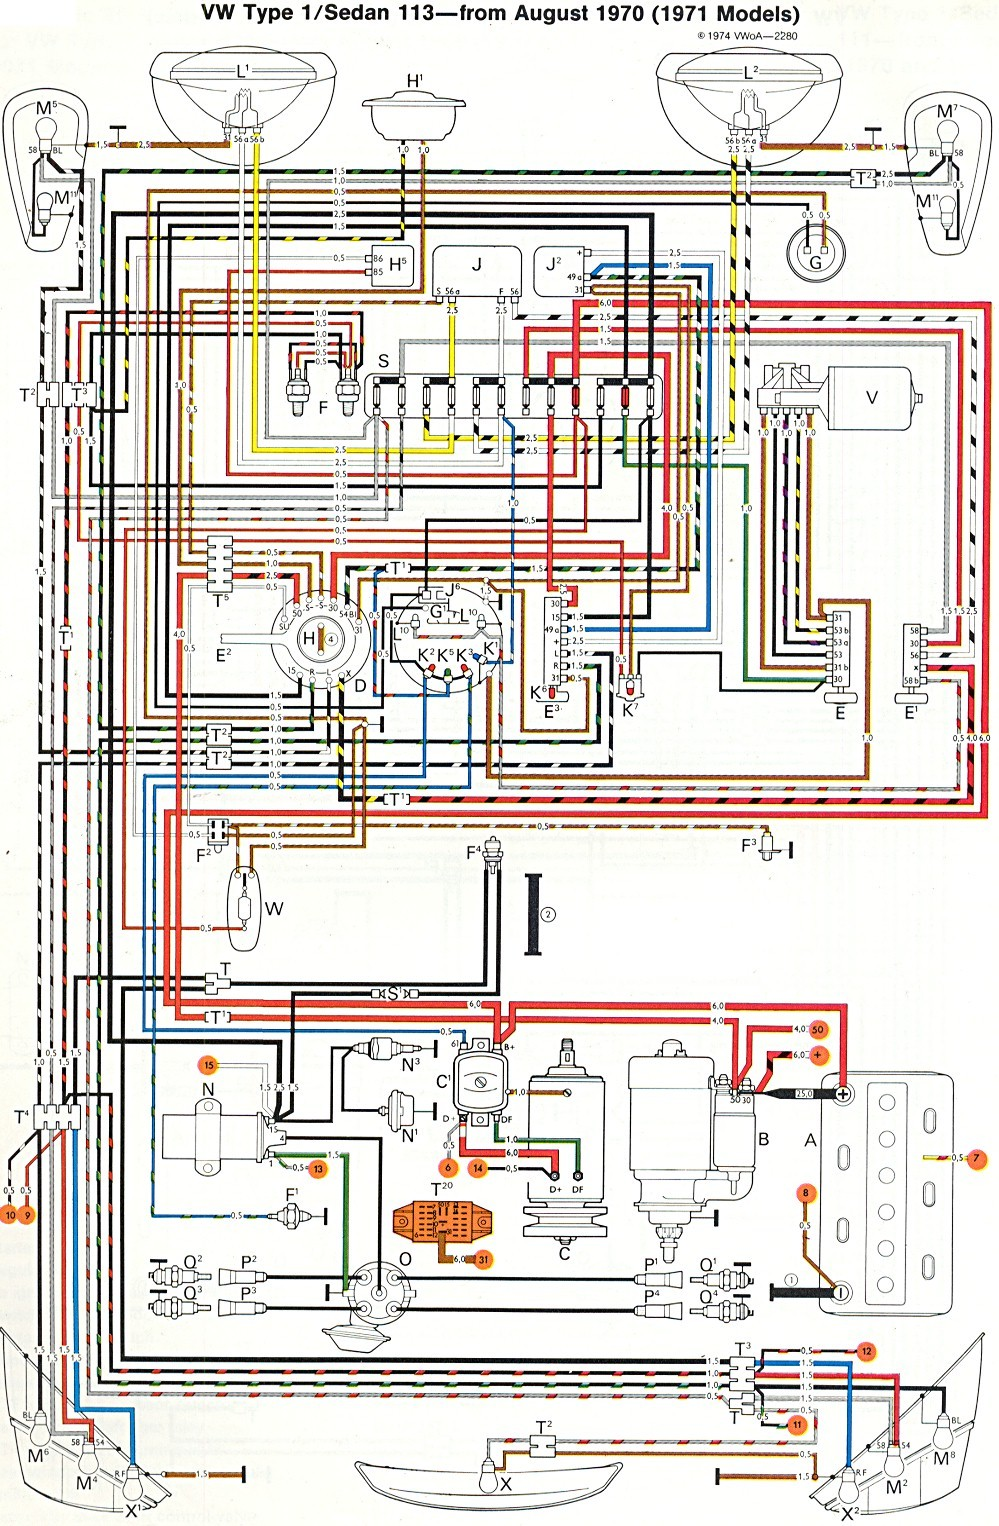 medium resolution of vw wiring diagram wiring diagram image rh mainetreasurechest com 1973 vw beetle engine